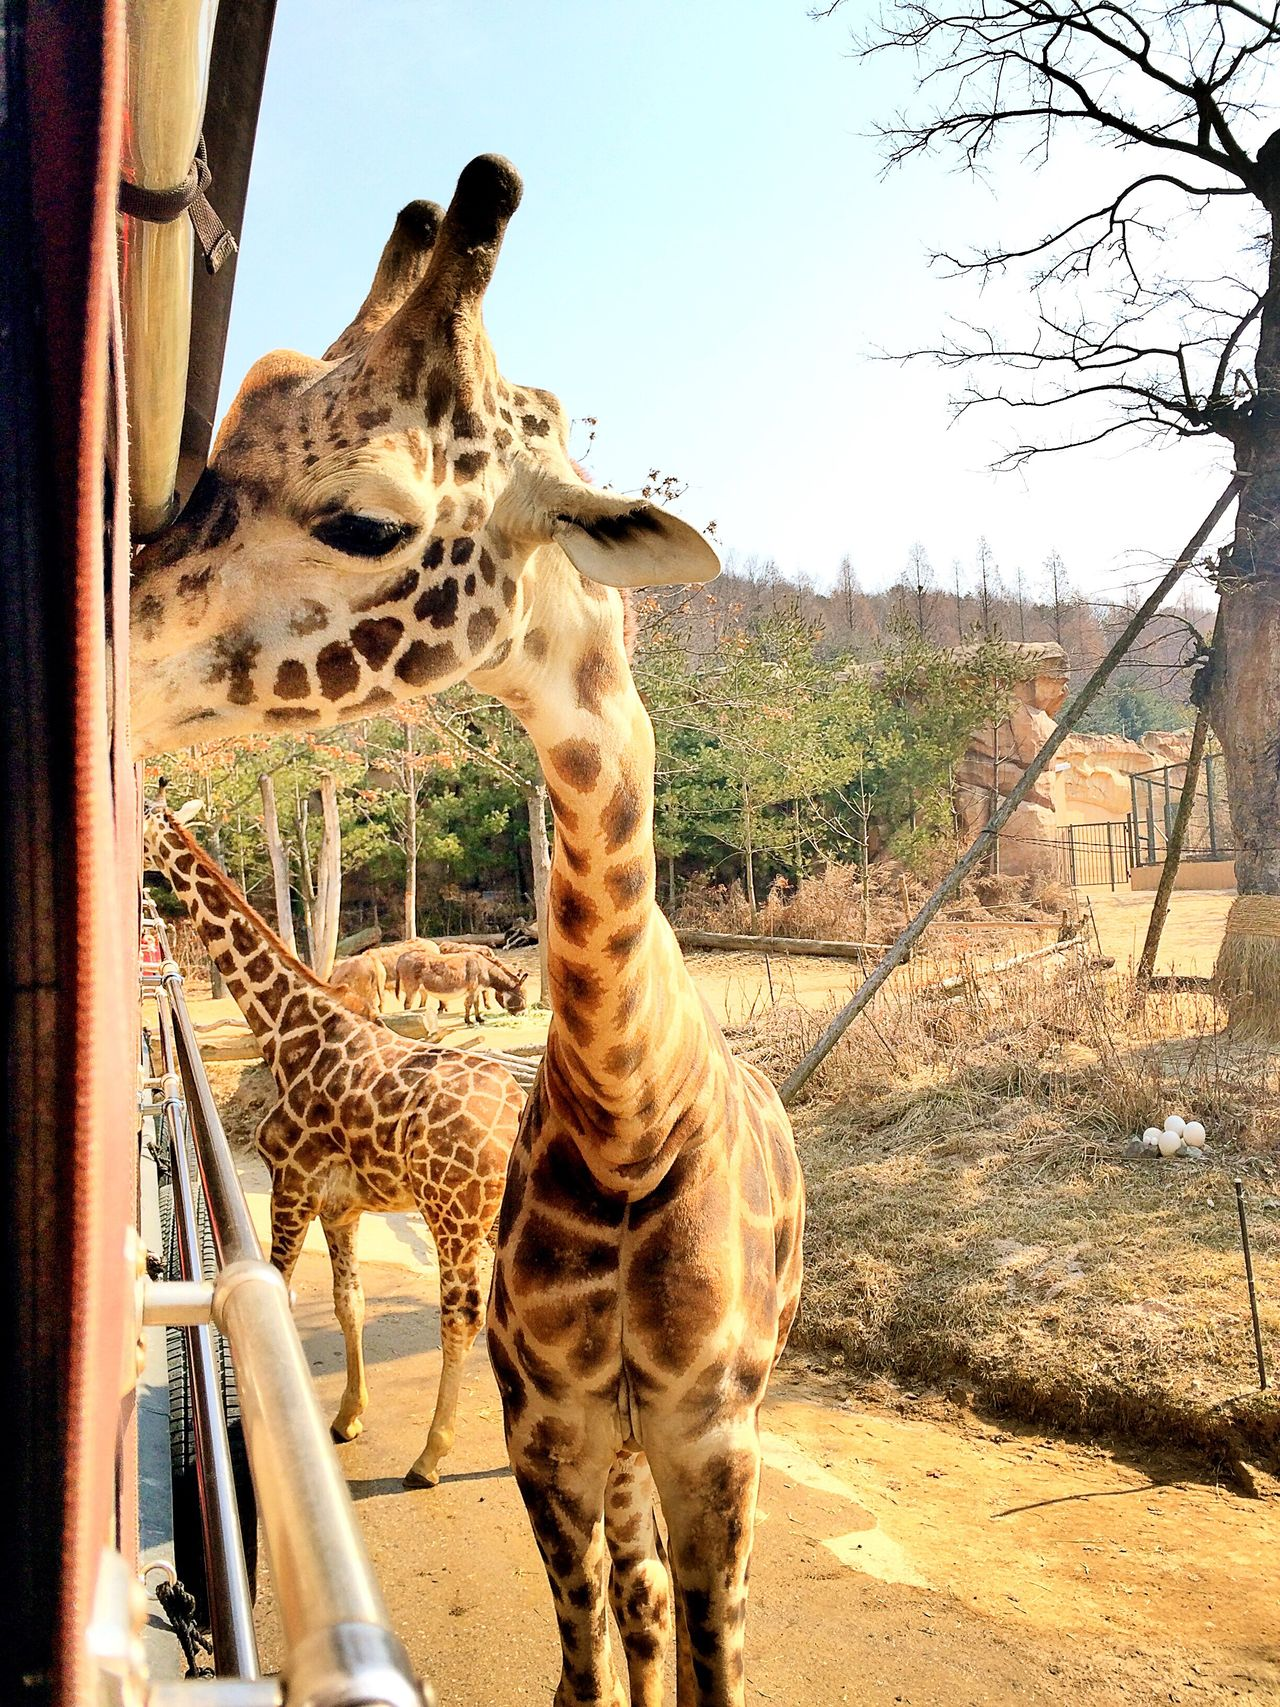 Giraffe Giraffes Love Anmial Too Close Touch Nature